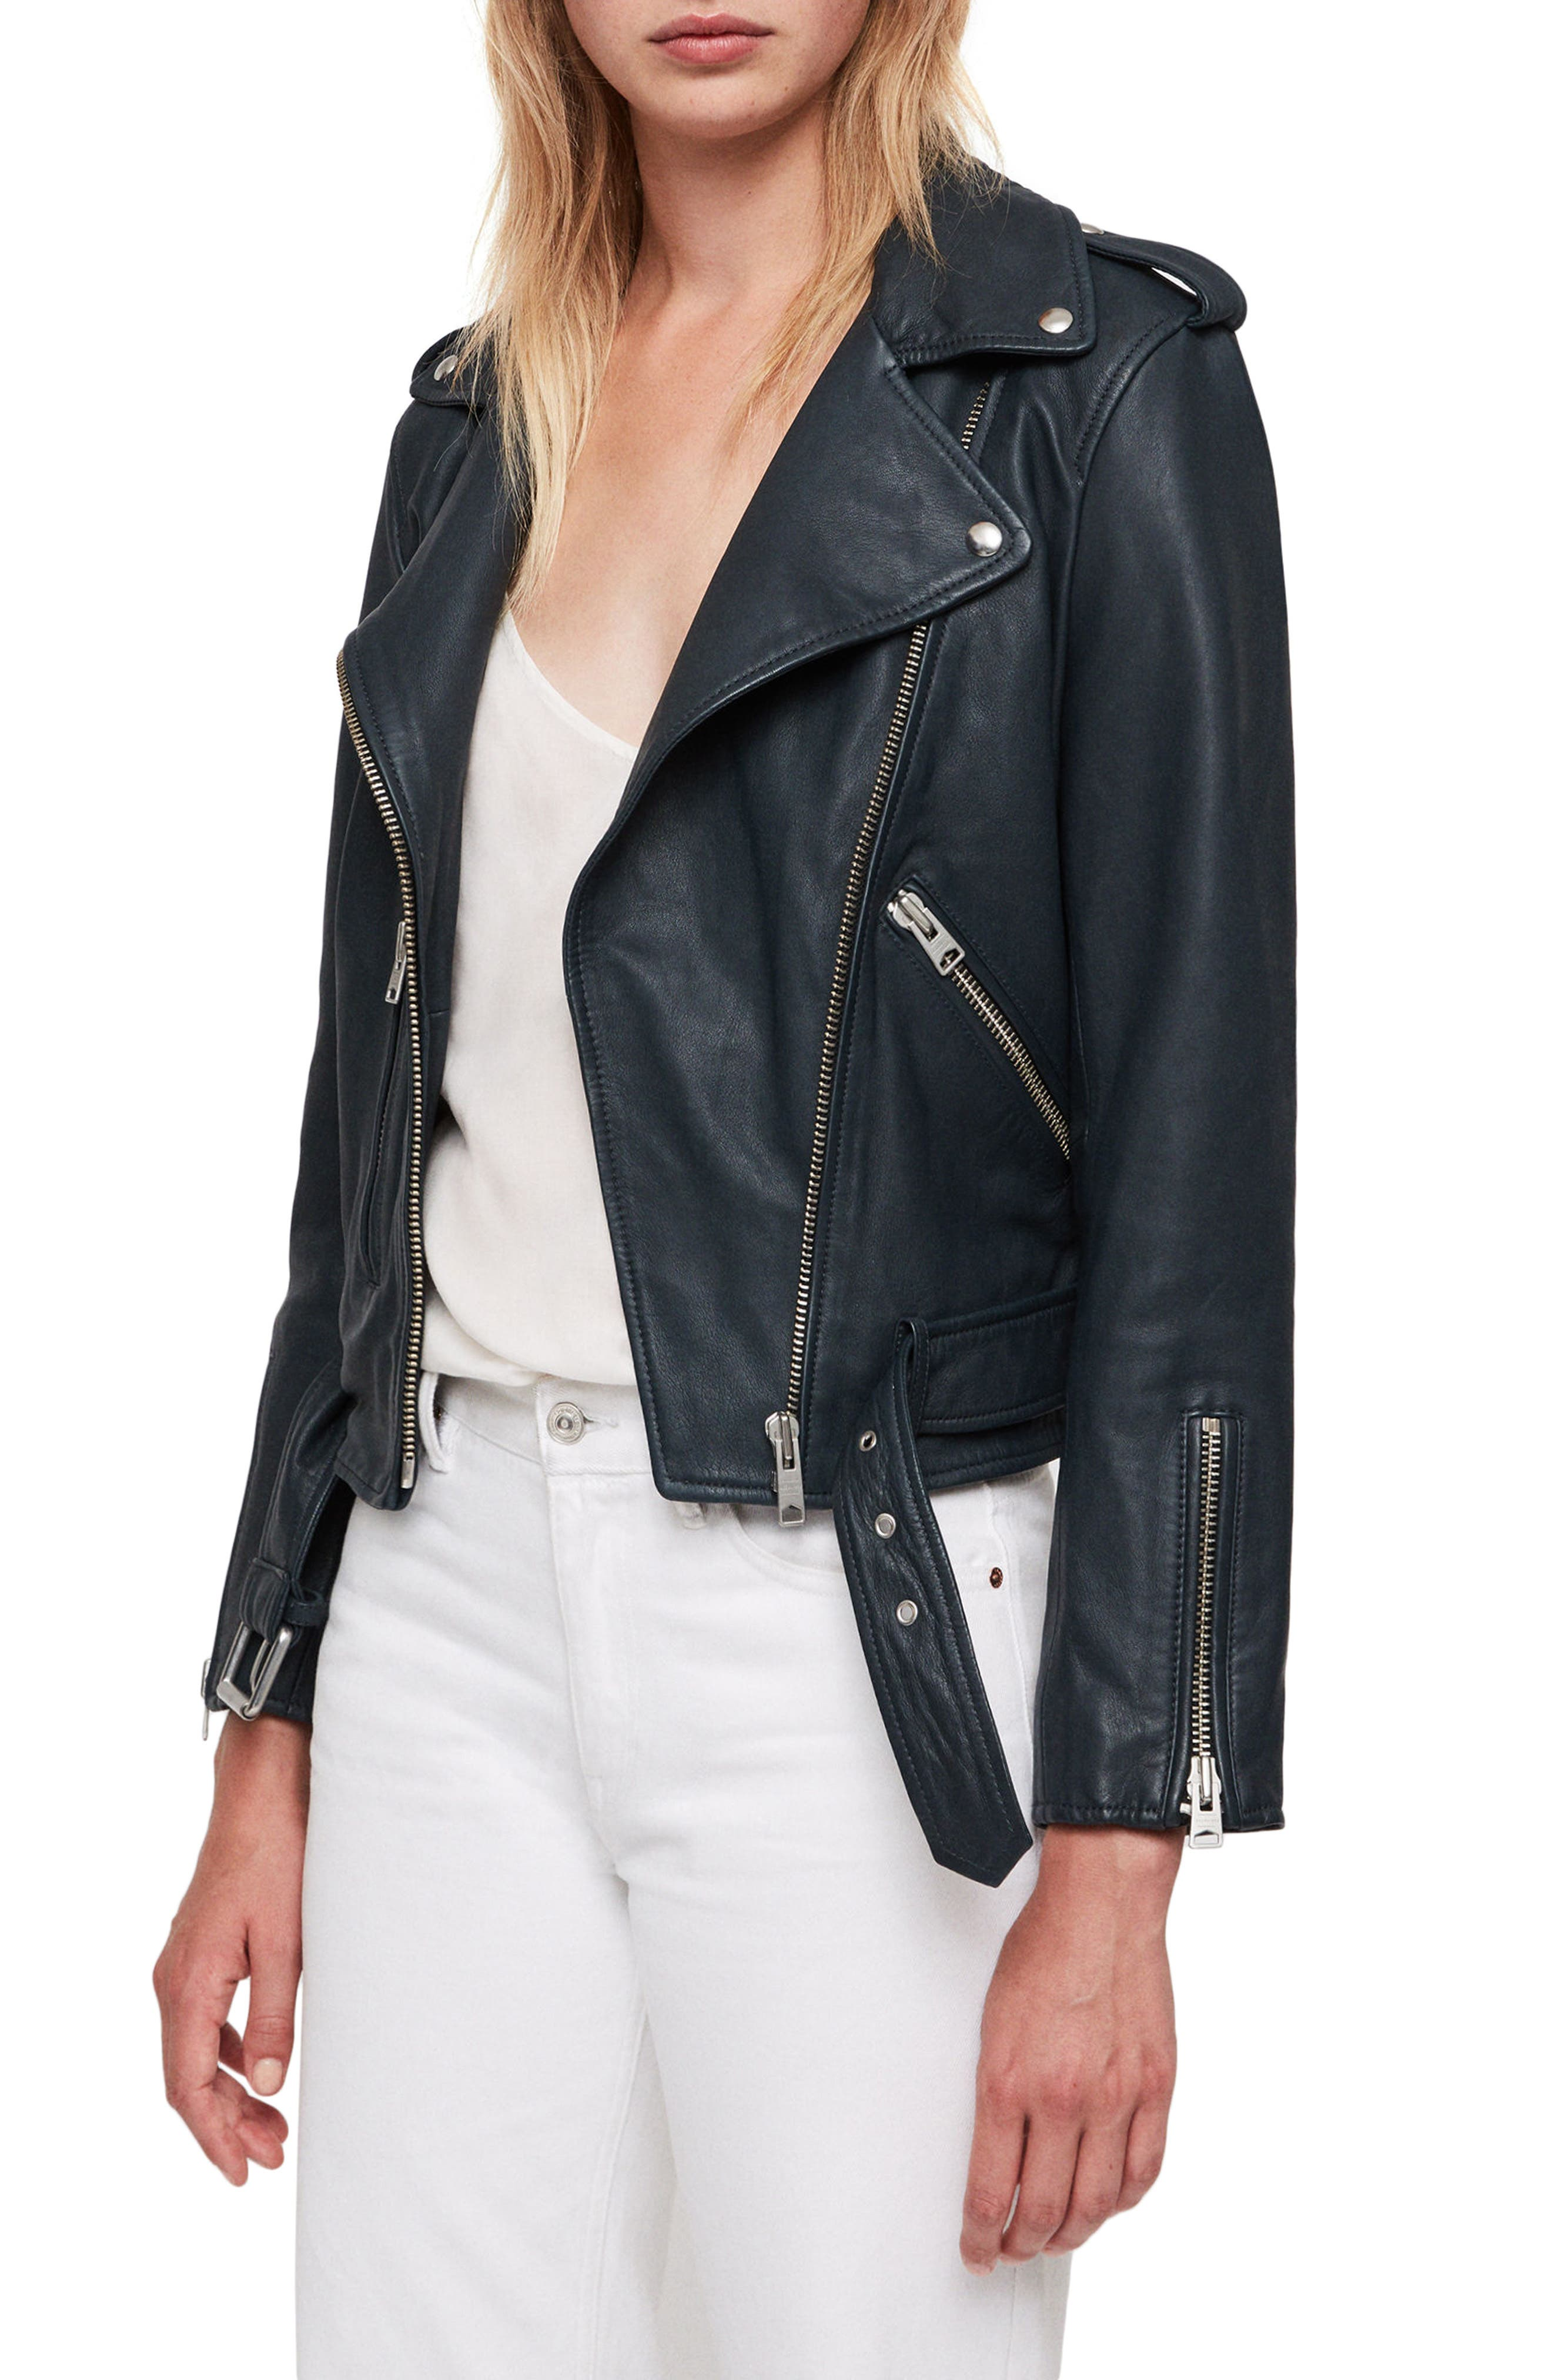 Balfern Leather Biker Jacket,                             Alternate thumbnail 3, color,                             404